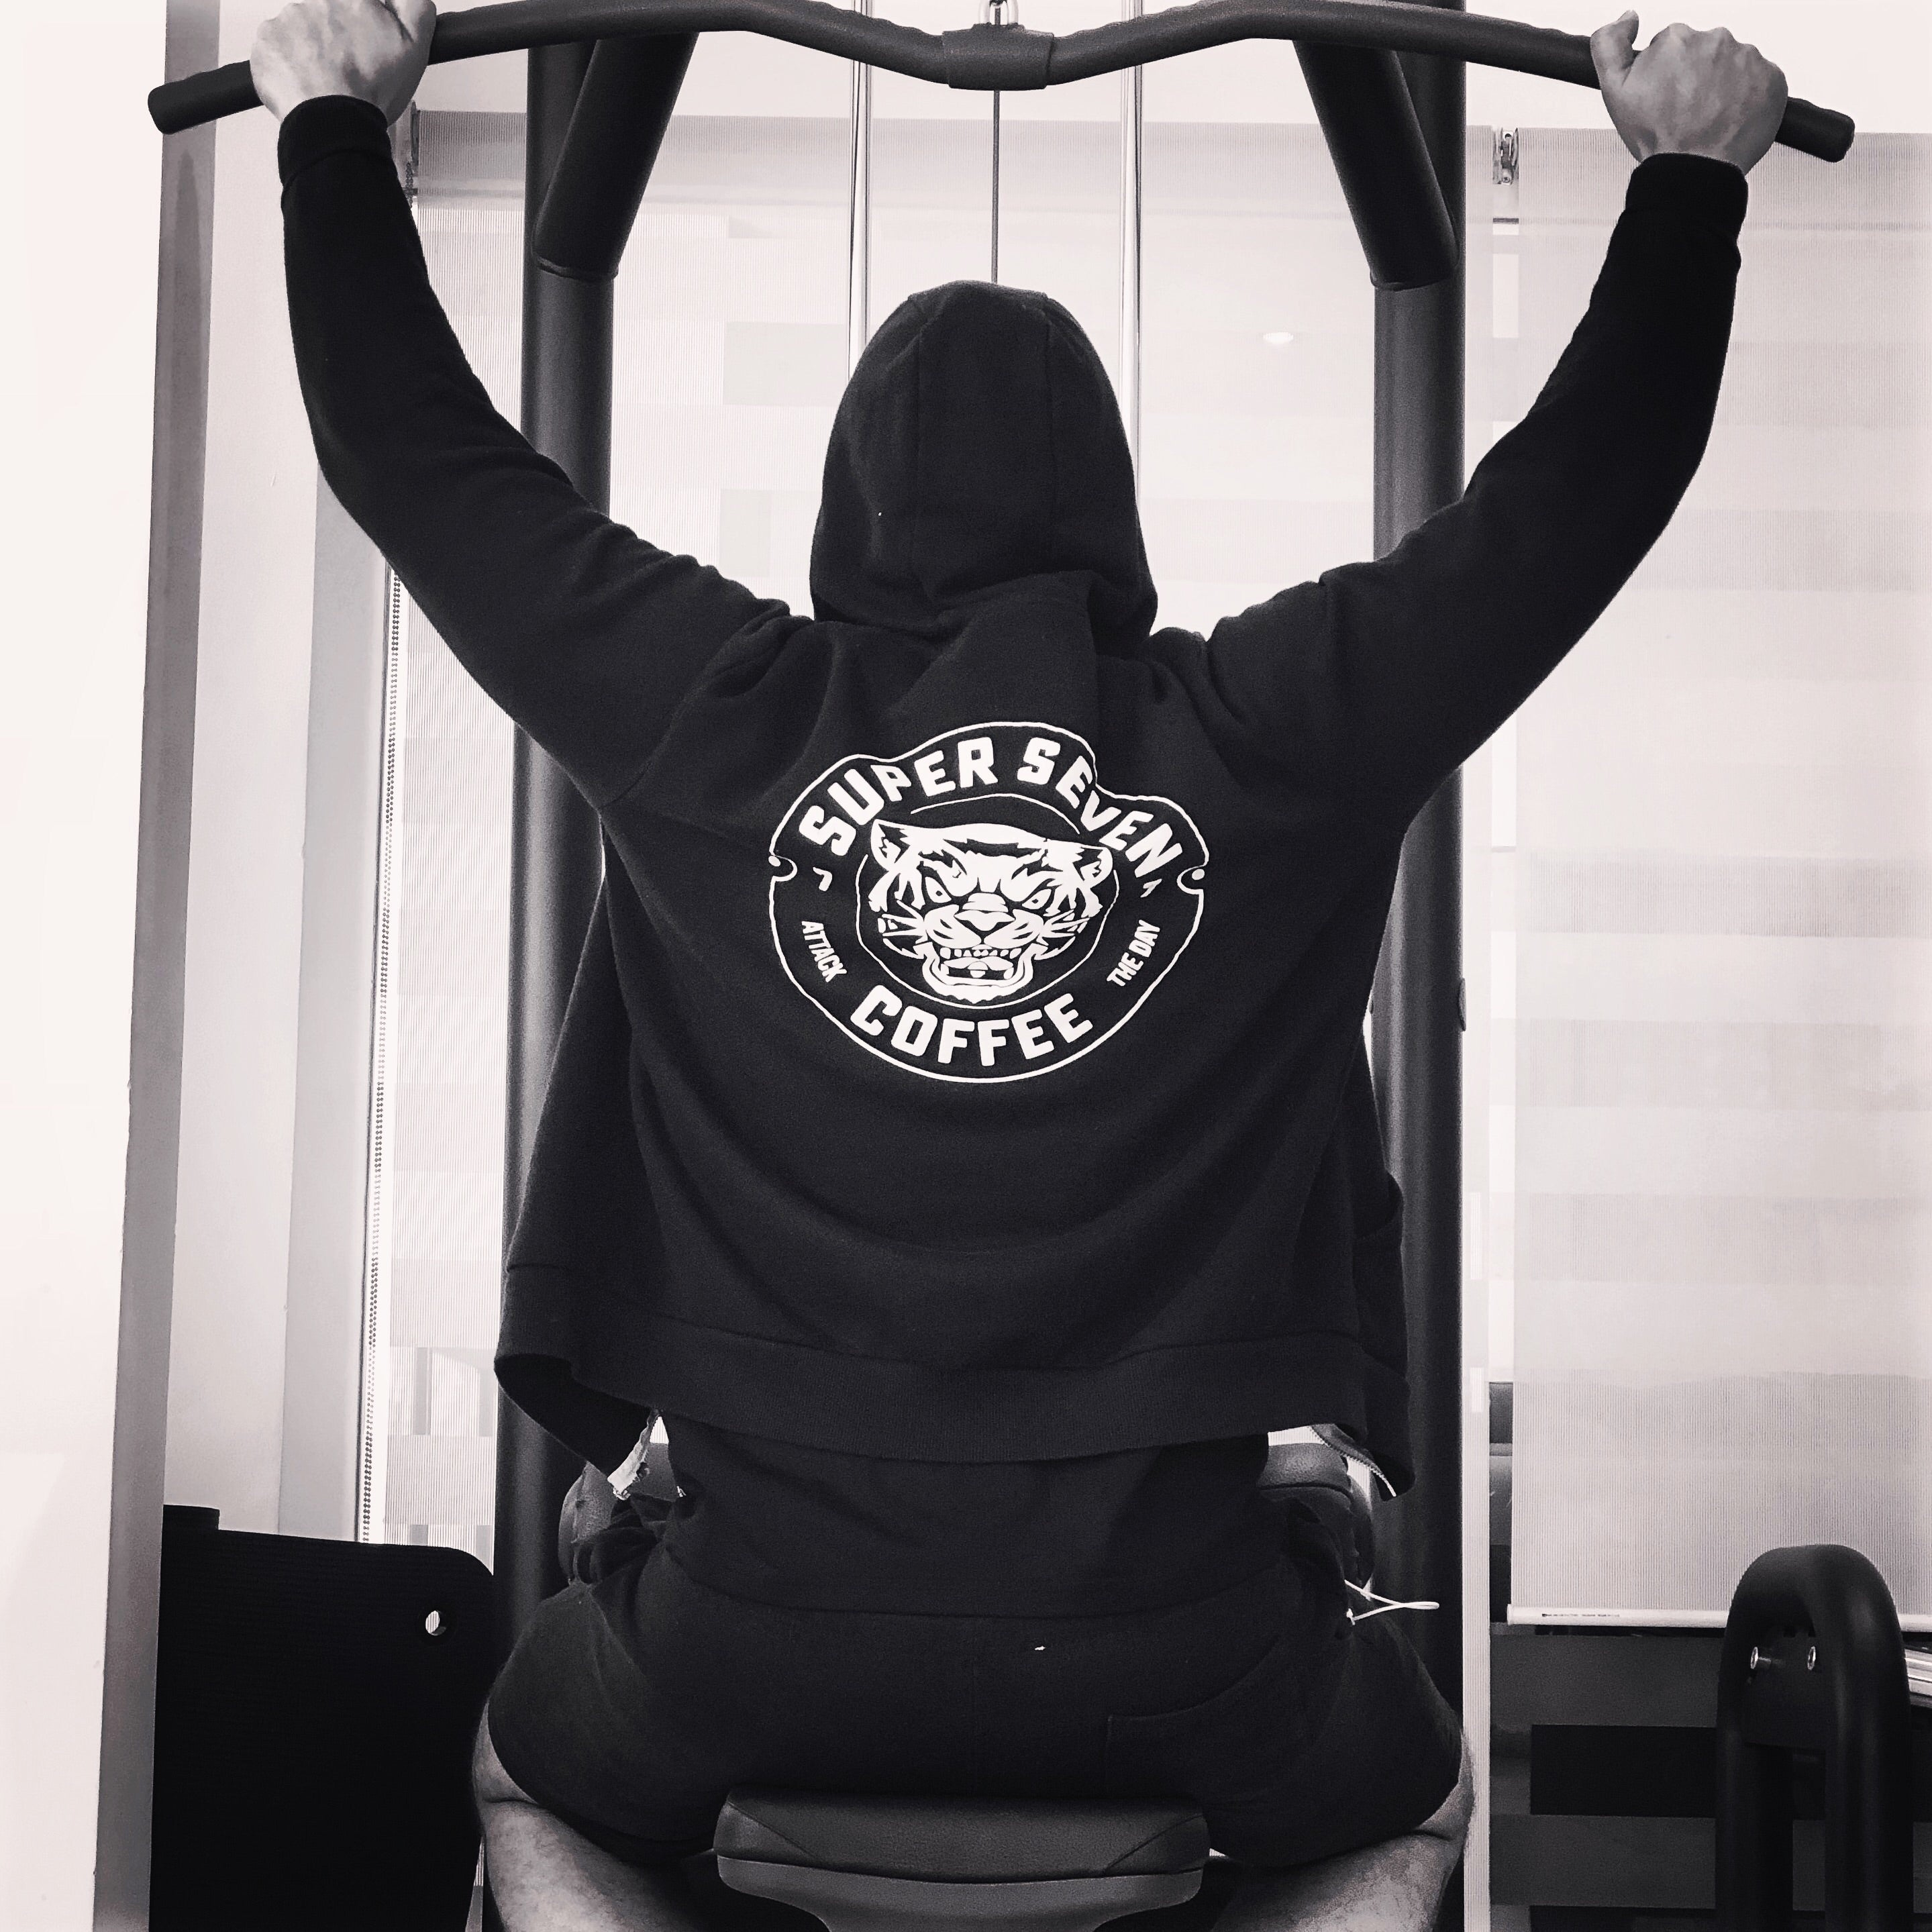 Man in Gym wearing Black Hoodie